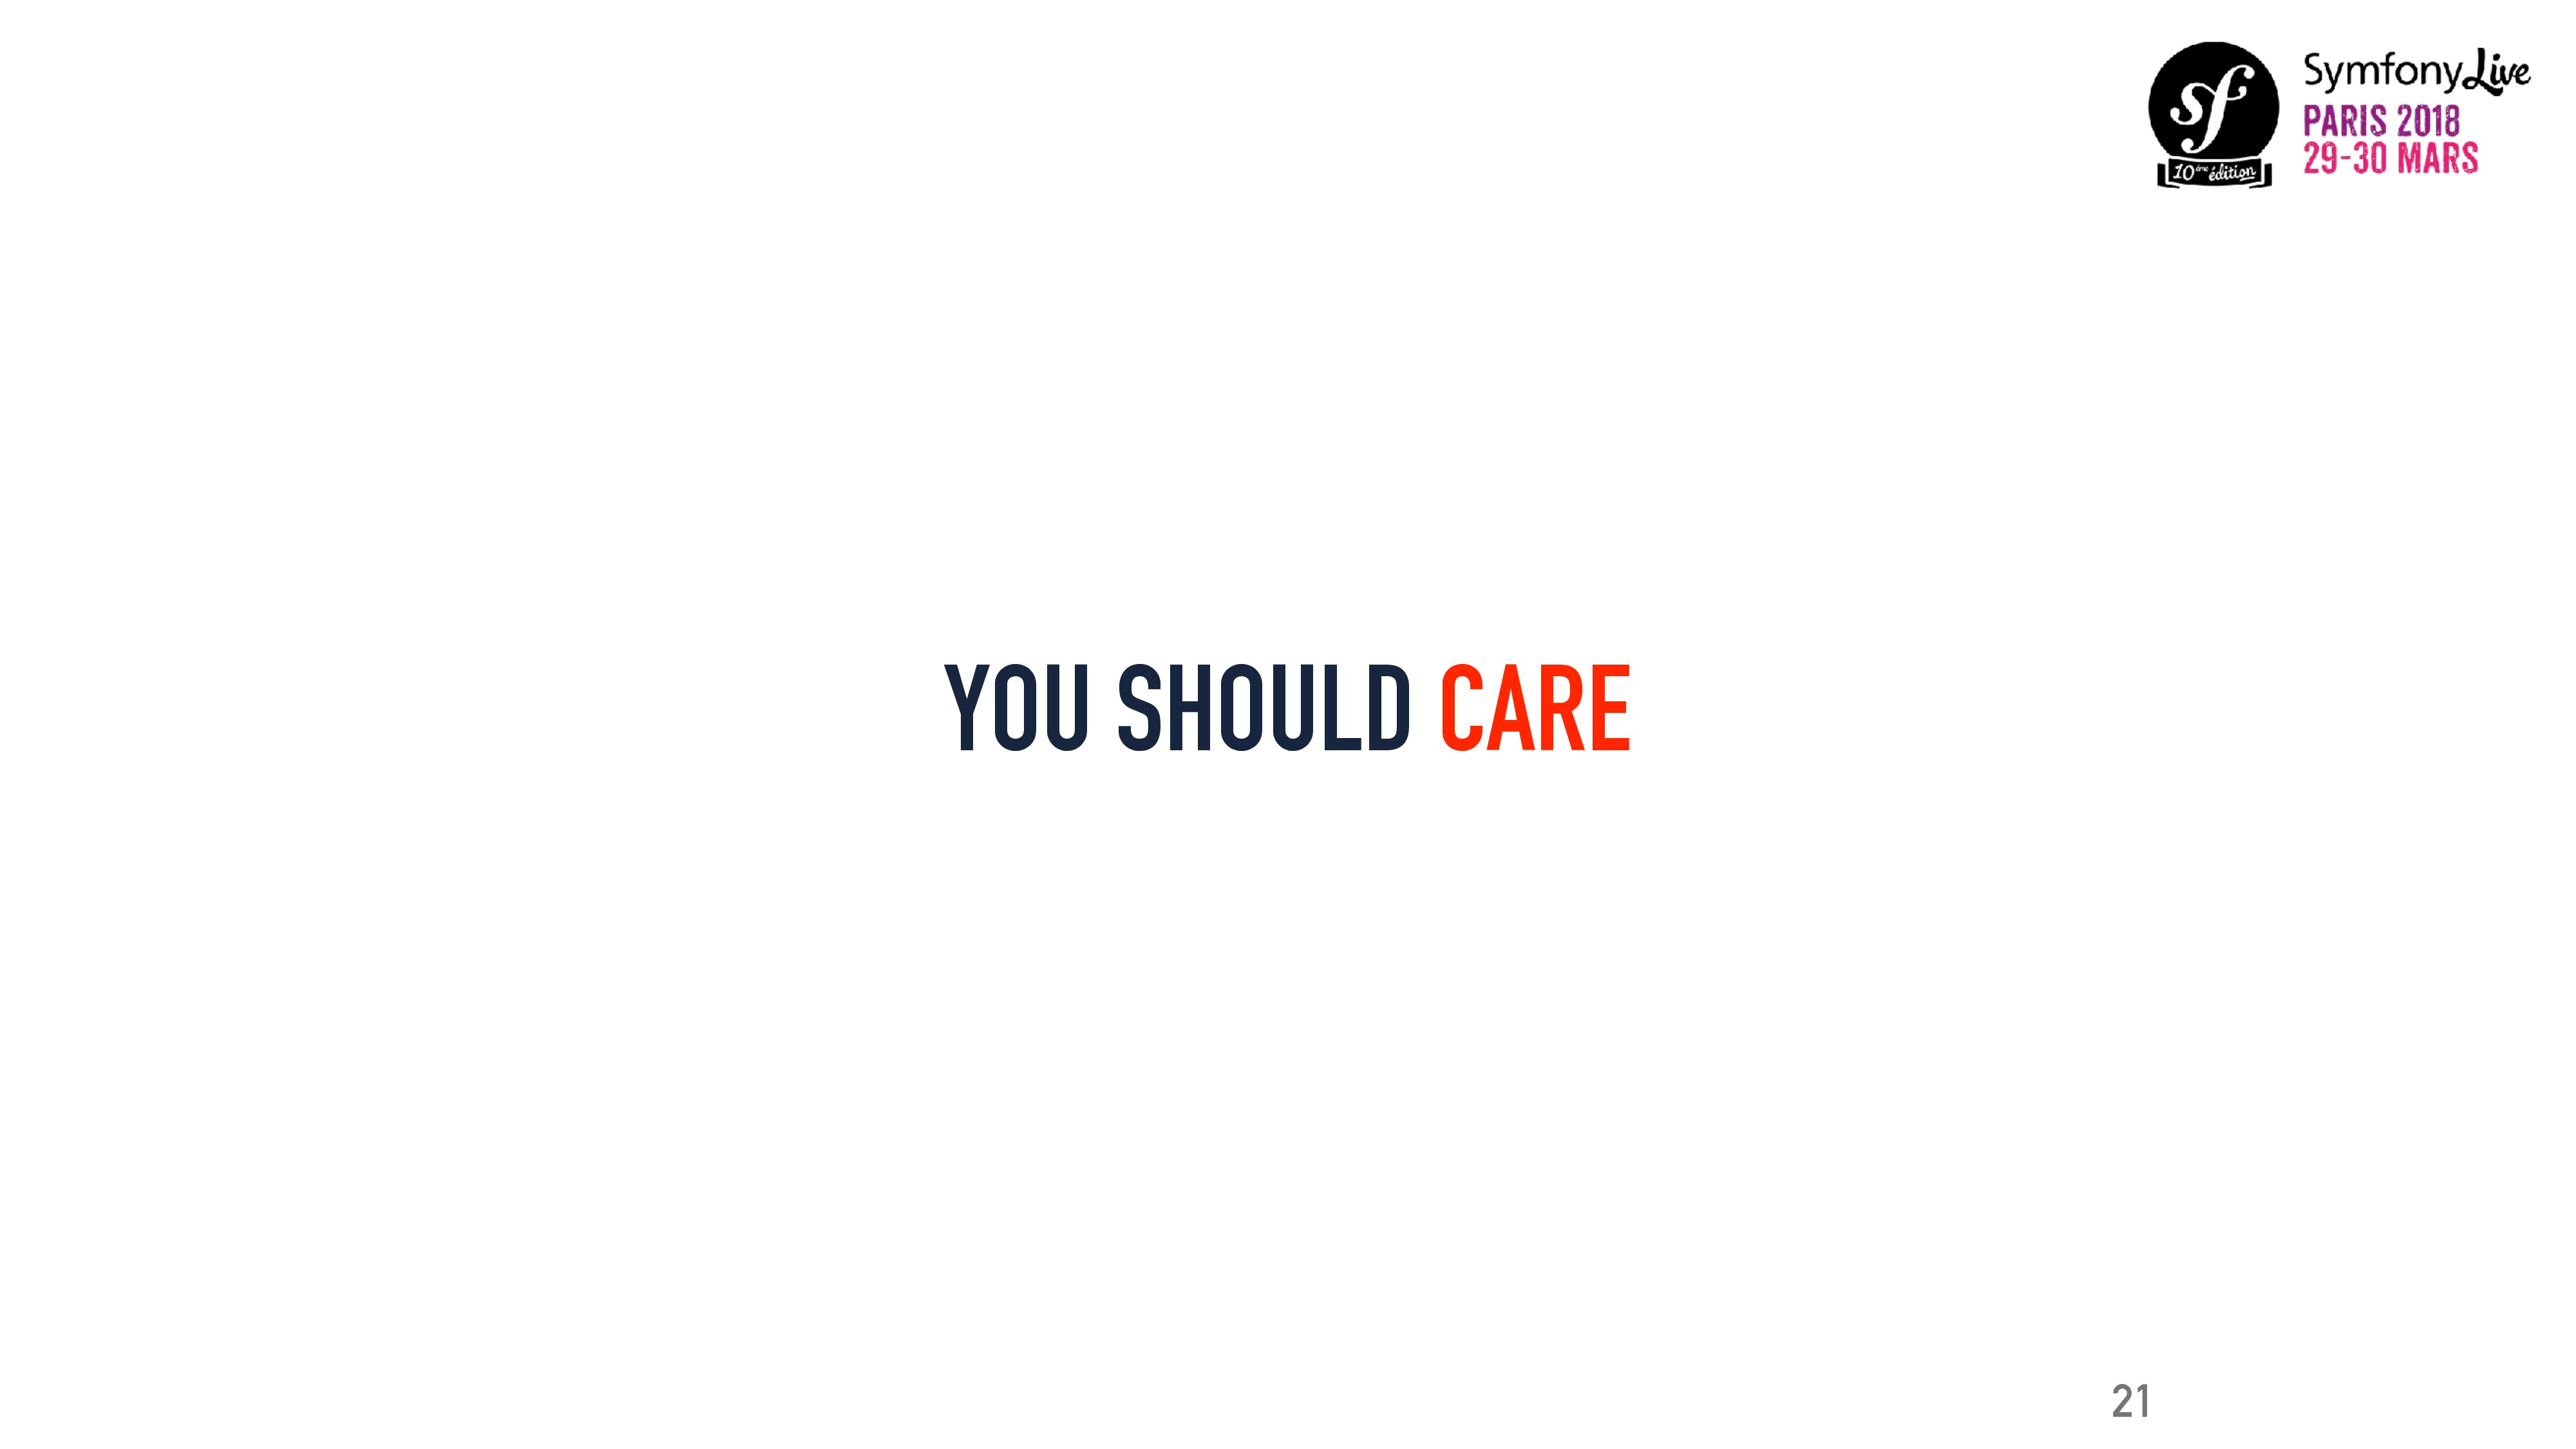 YOU SHOULD CARE 21